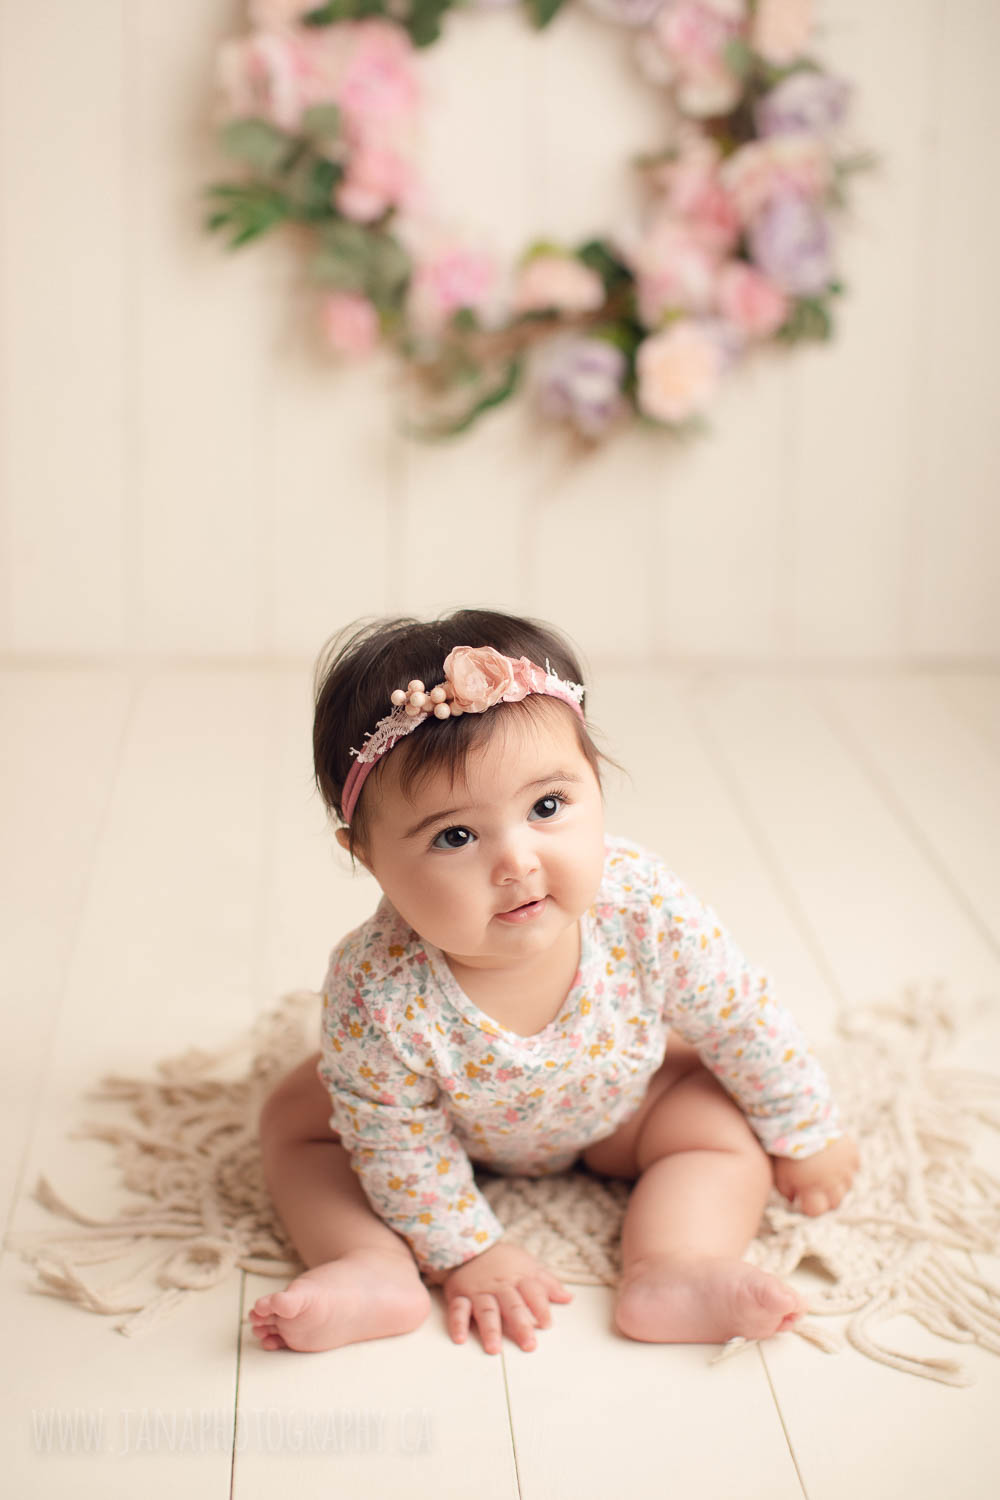 Baby girl sitting with headband and floral pink dress